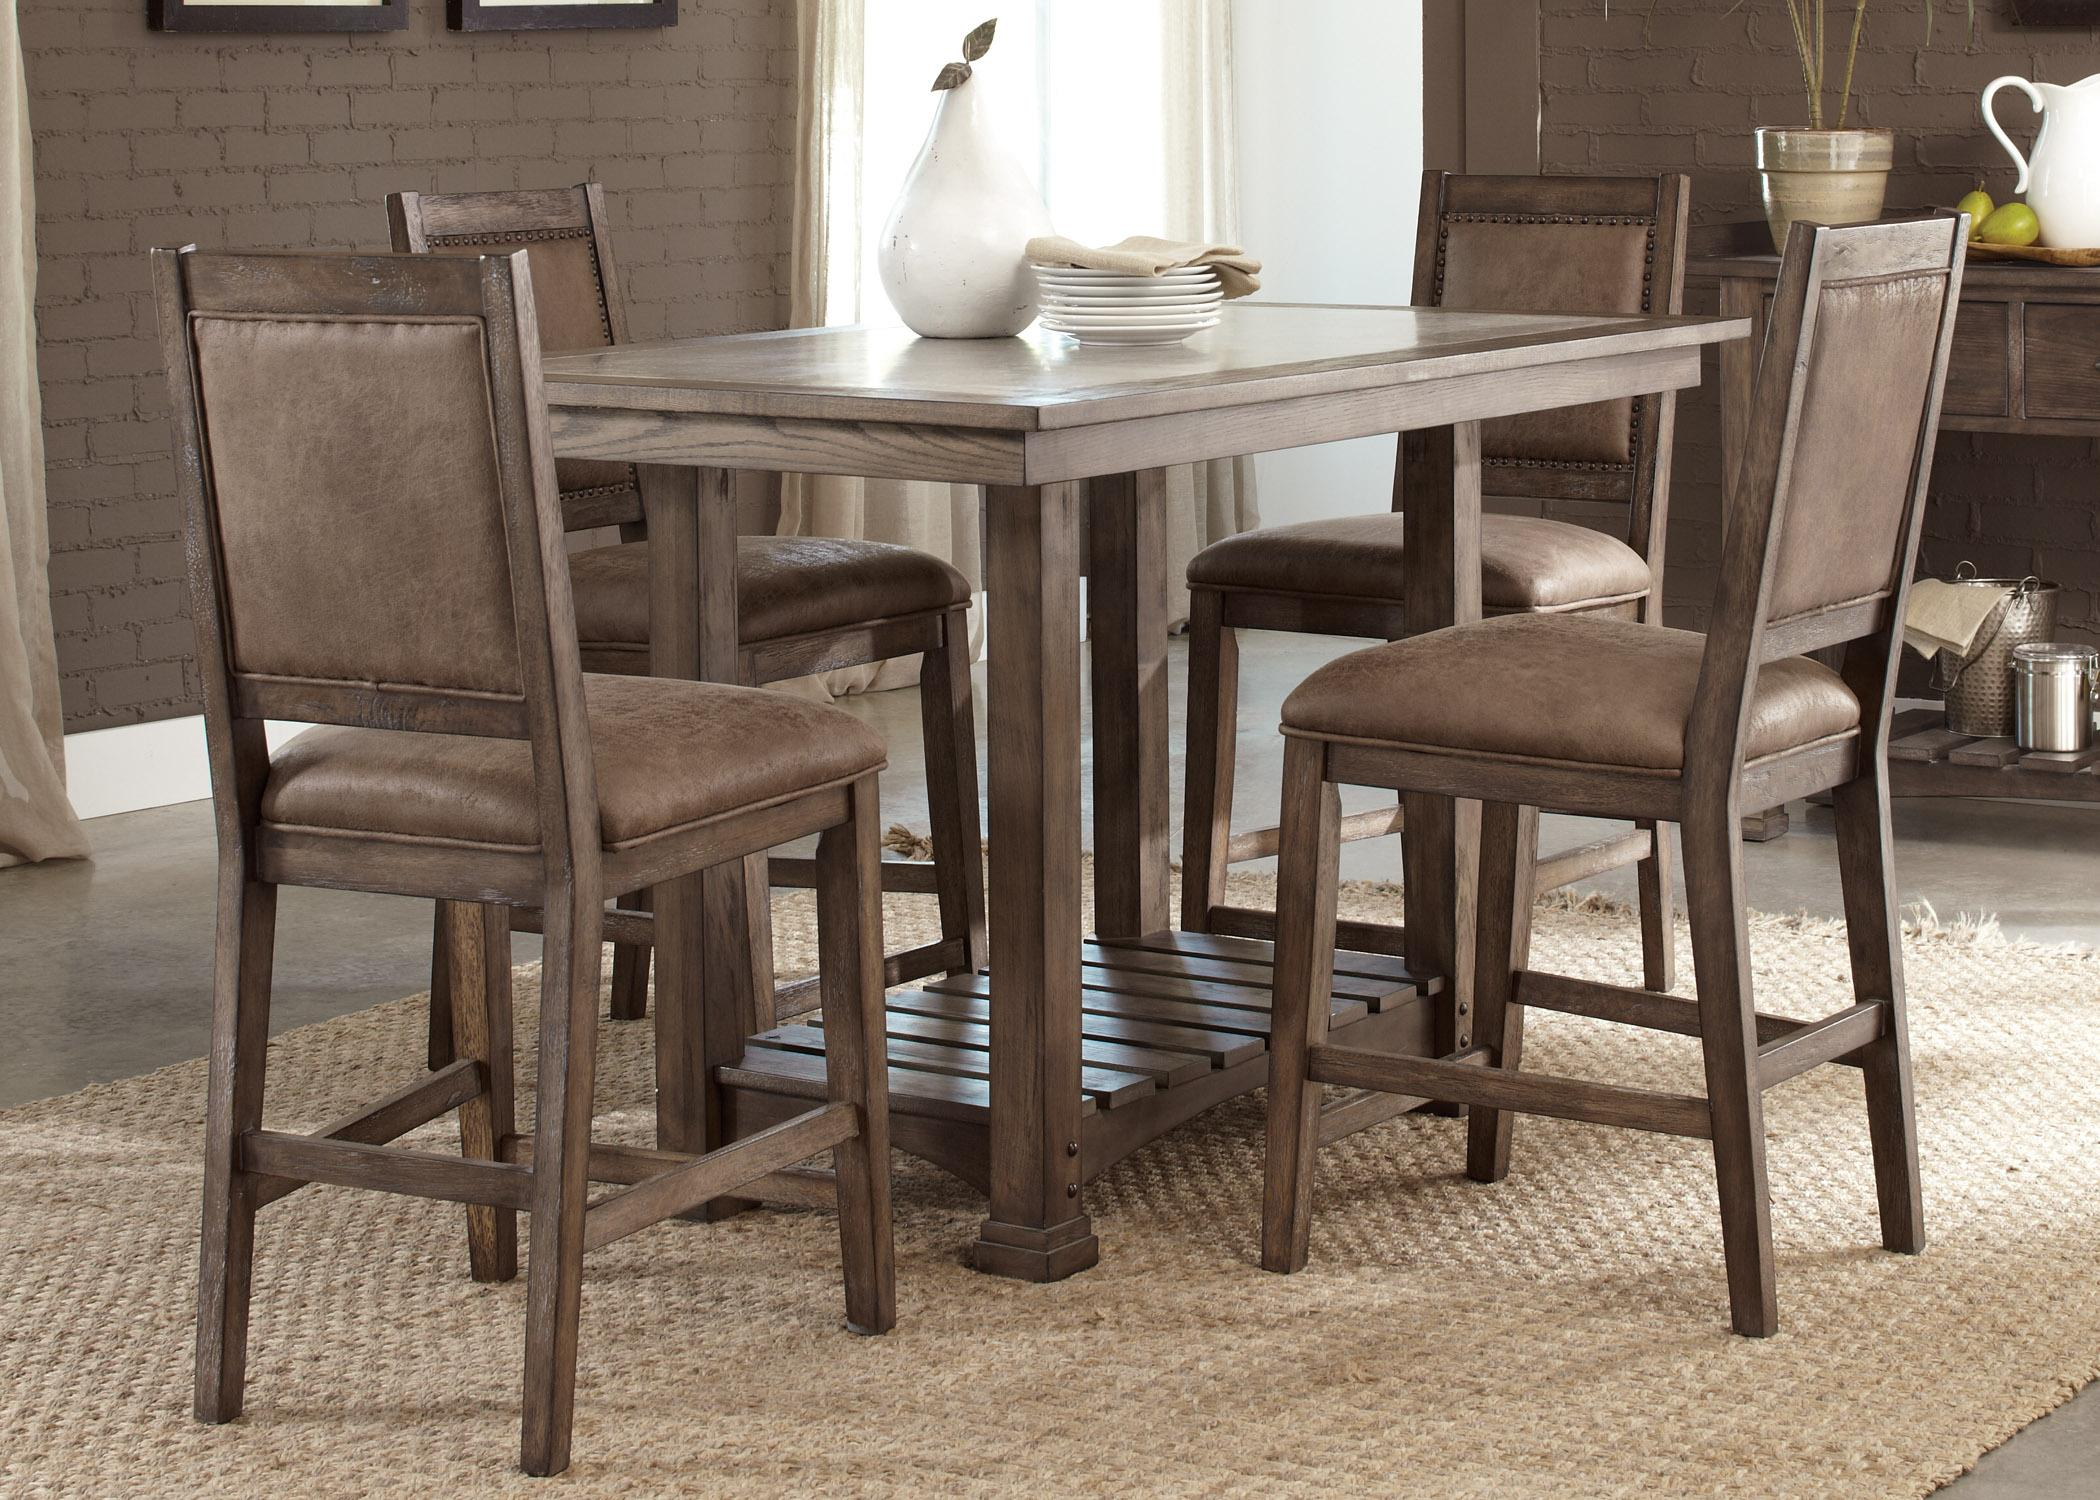 Liberty furniture stone brook casual dining room group for Casual dining room